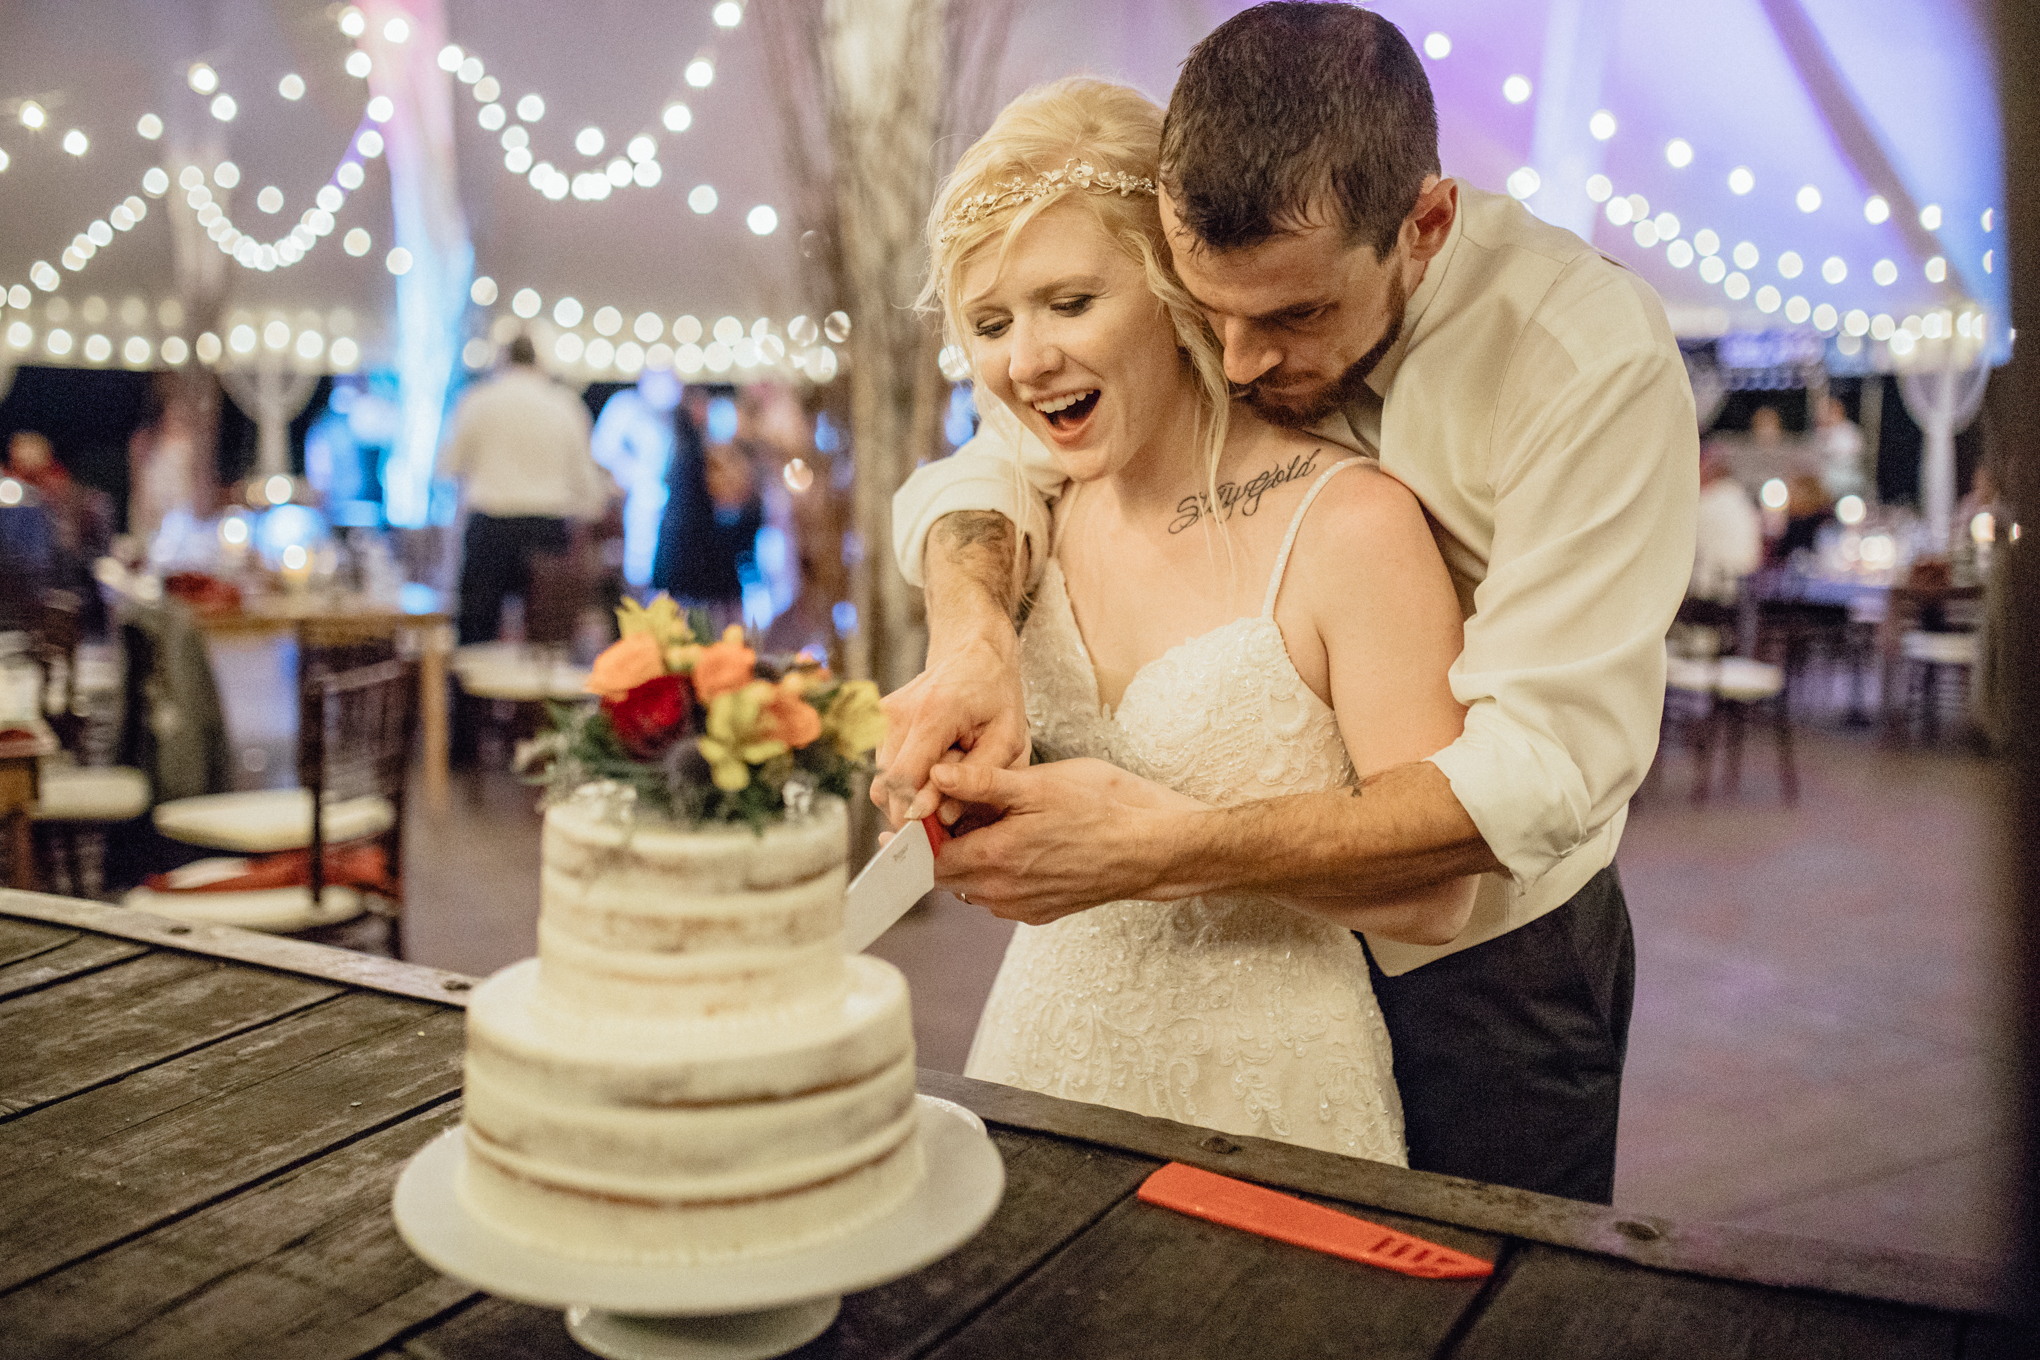 bride and groom cutting cake at oak hill weddings reception